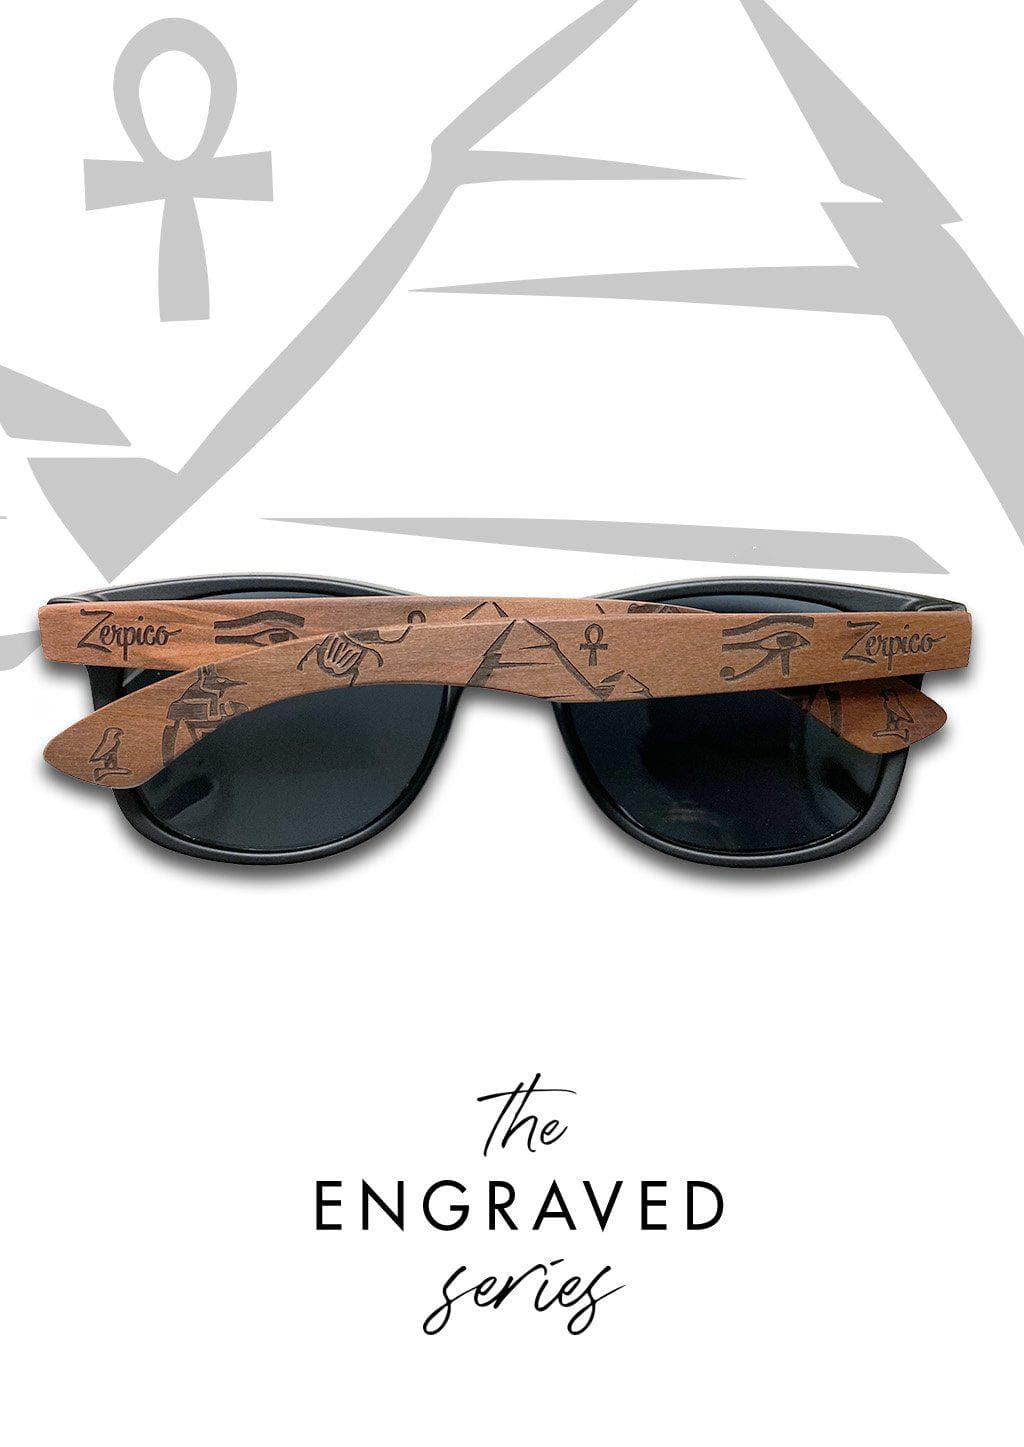 Eyewood Wayfarer  Spec. Ed. - Relic - Our engraved wooden sunglasses with patterns from ancient Eqypt.